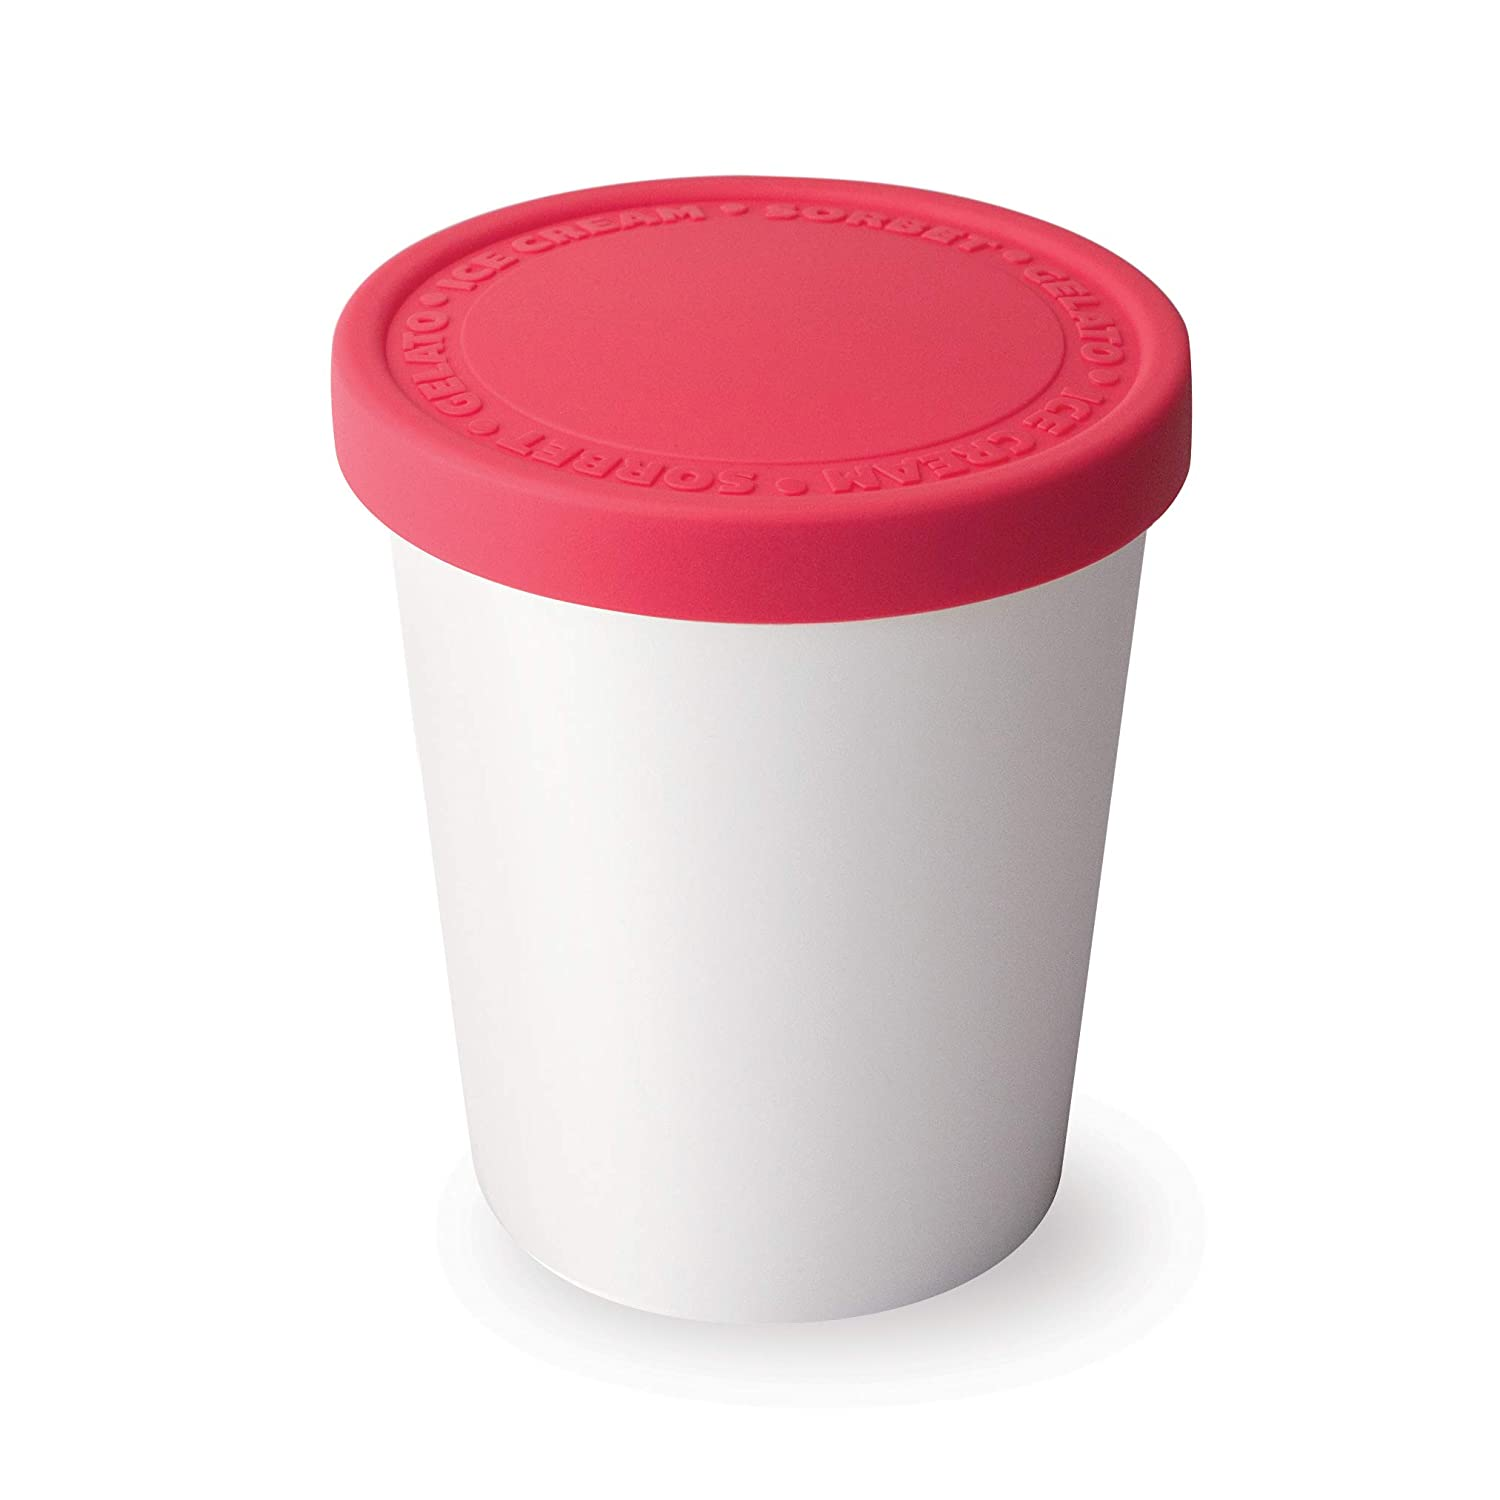 Tovolo Sweet Treats Tub, Tight-Fitting Silicone Lid, Stack Easily, Lemon 61-3583